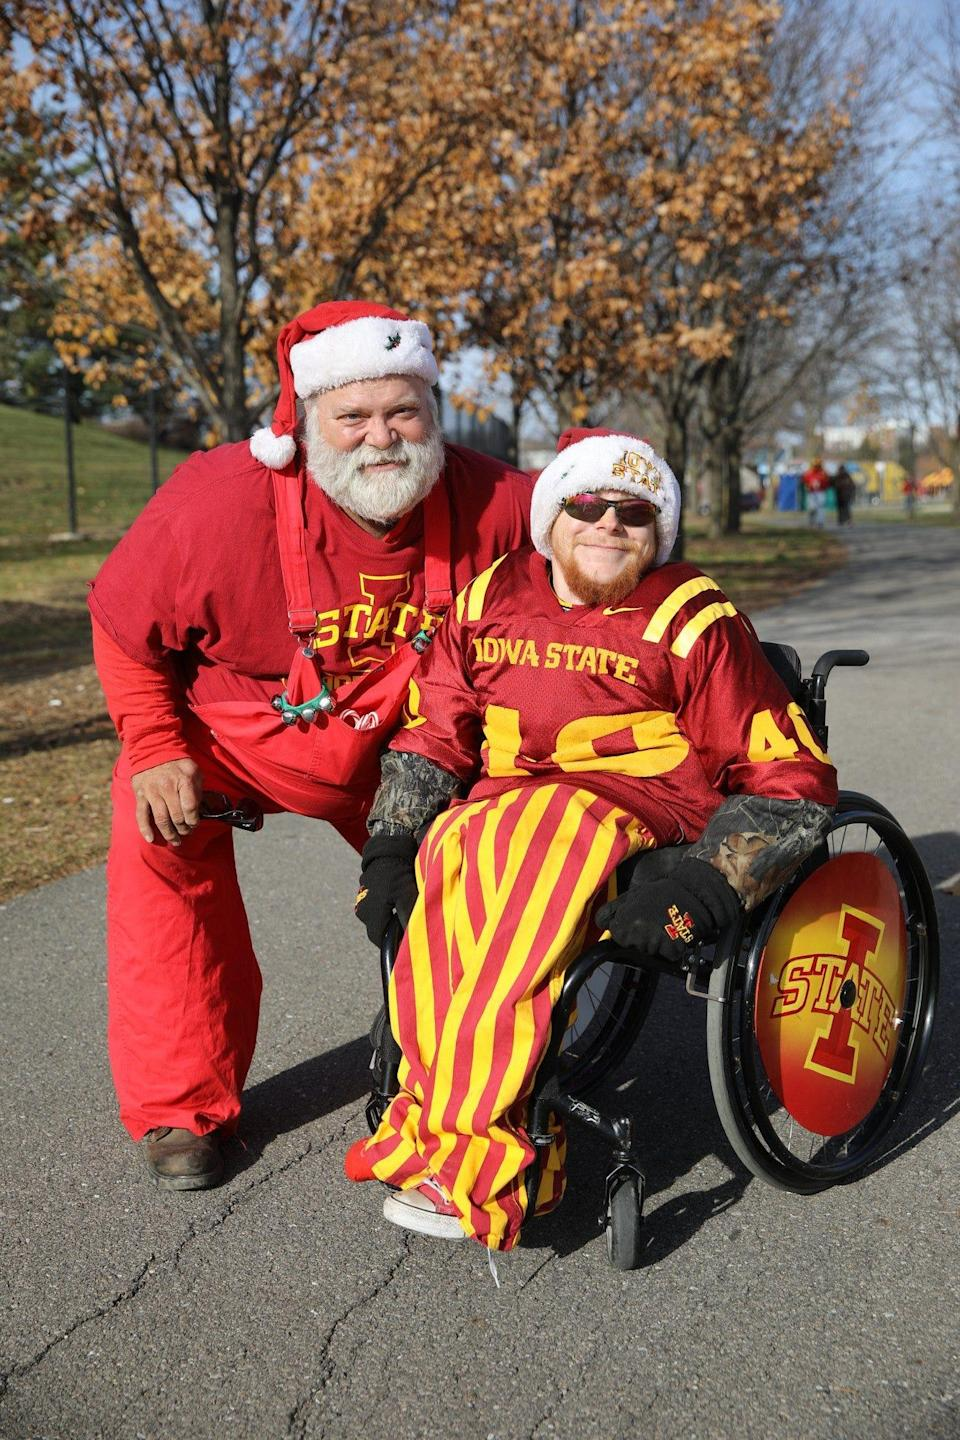 Nick Bassett has been an Iowa State football season ticket holder since 2012, often going to games with his dad Vick.